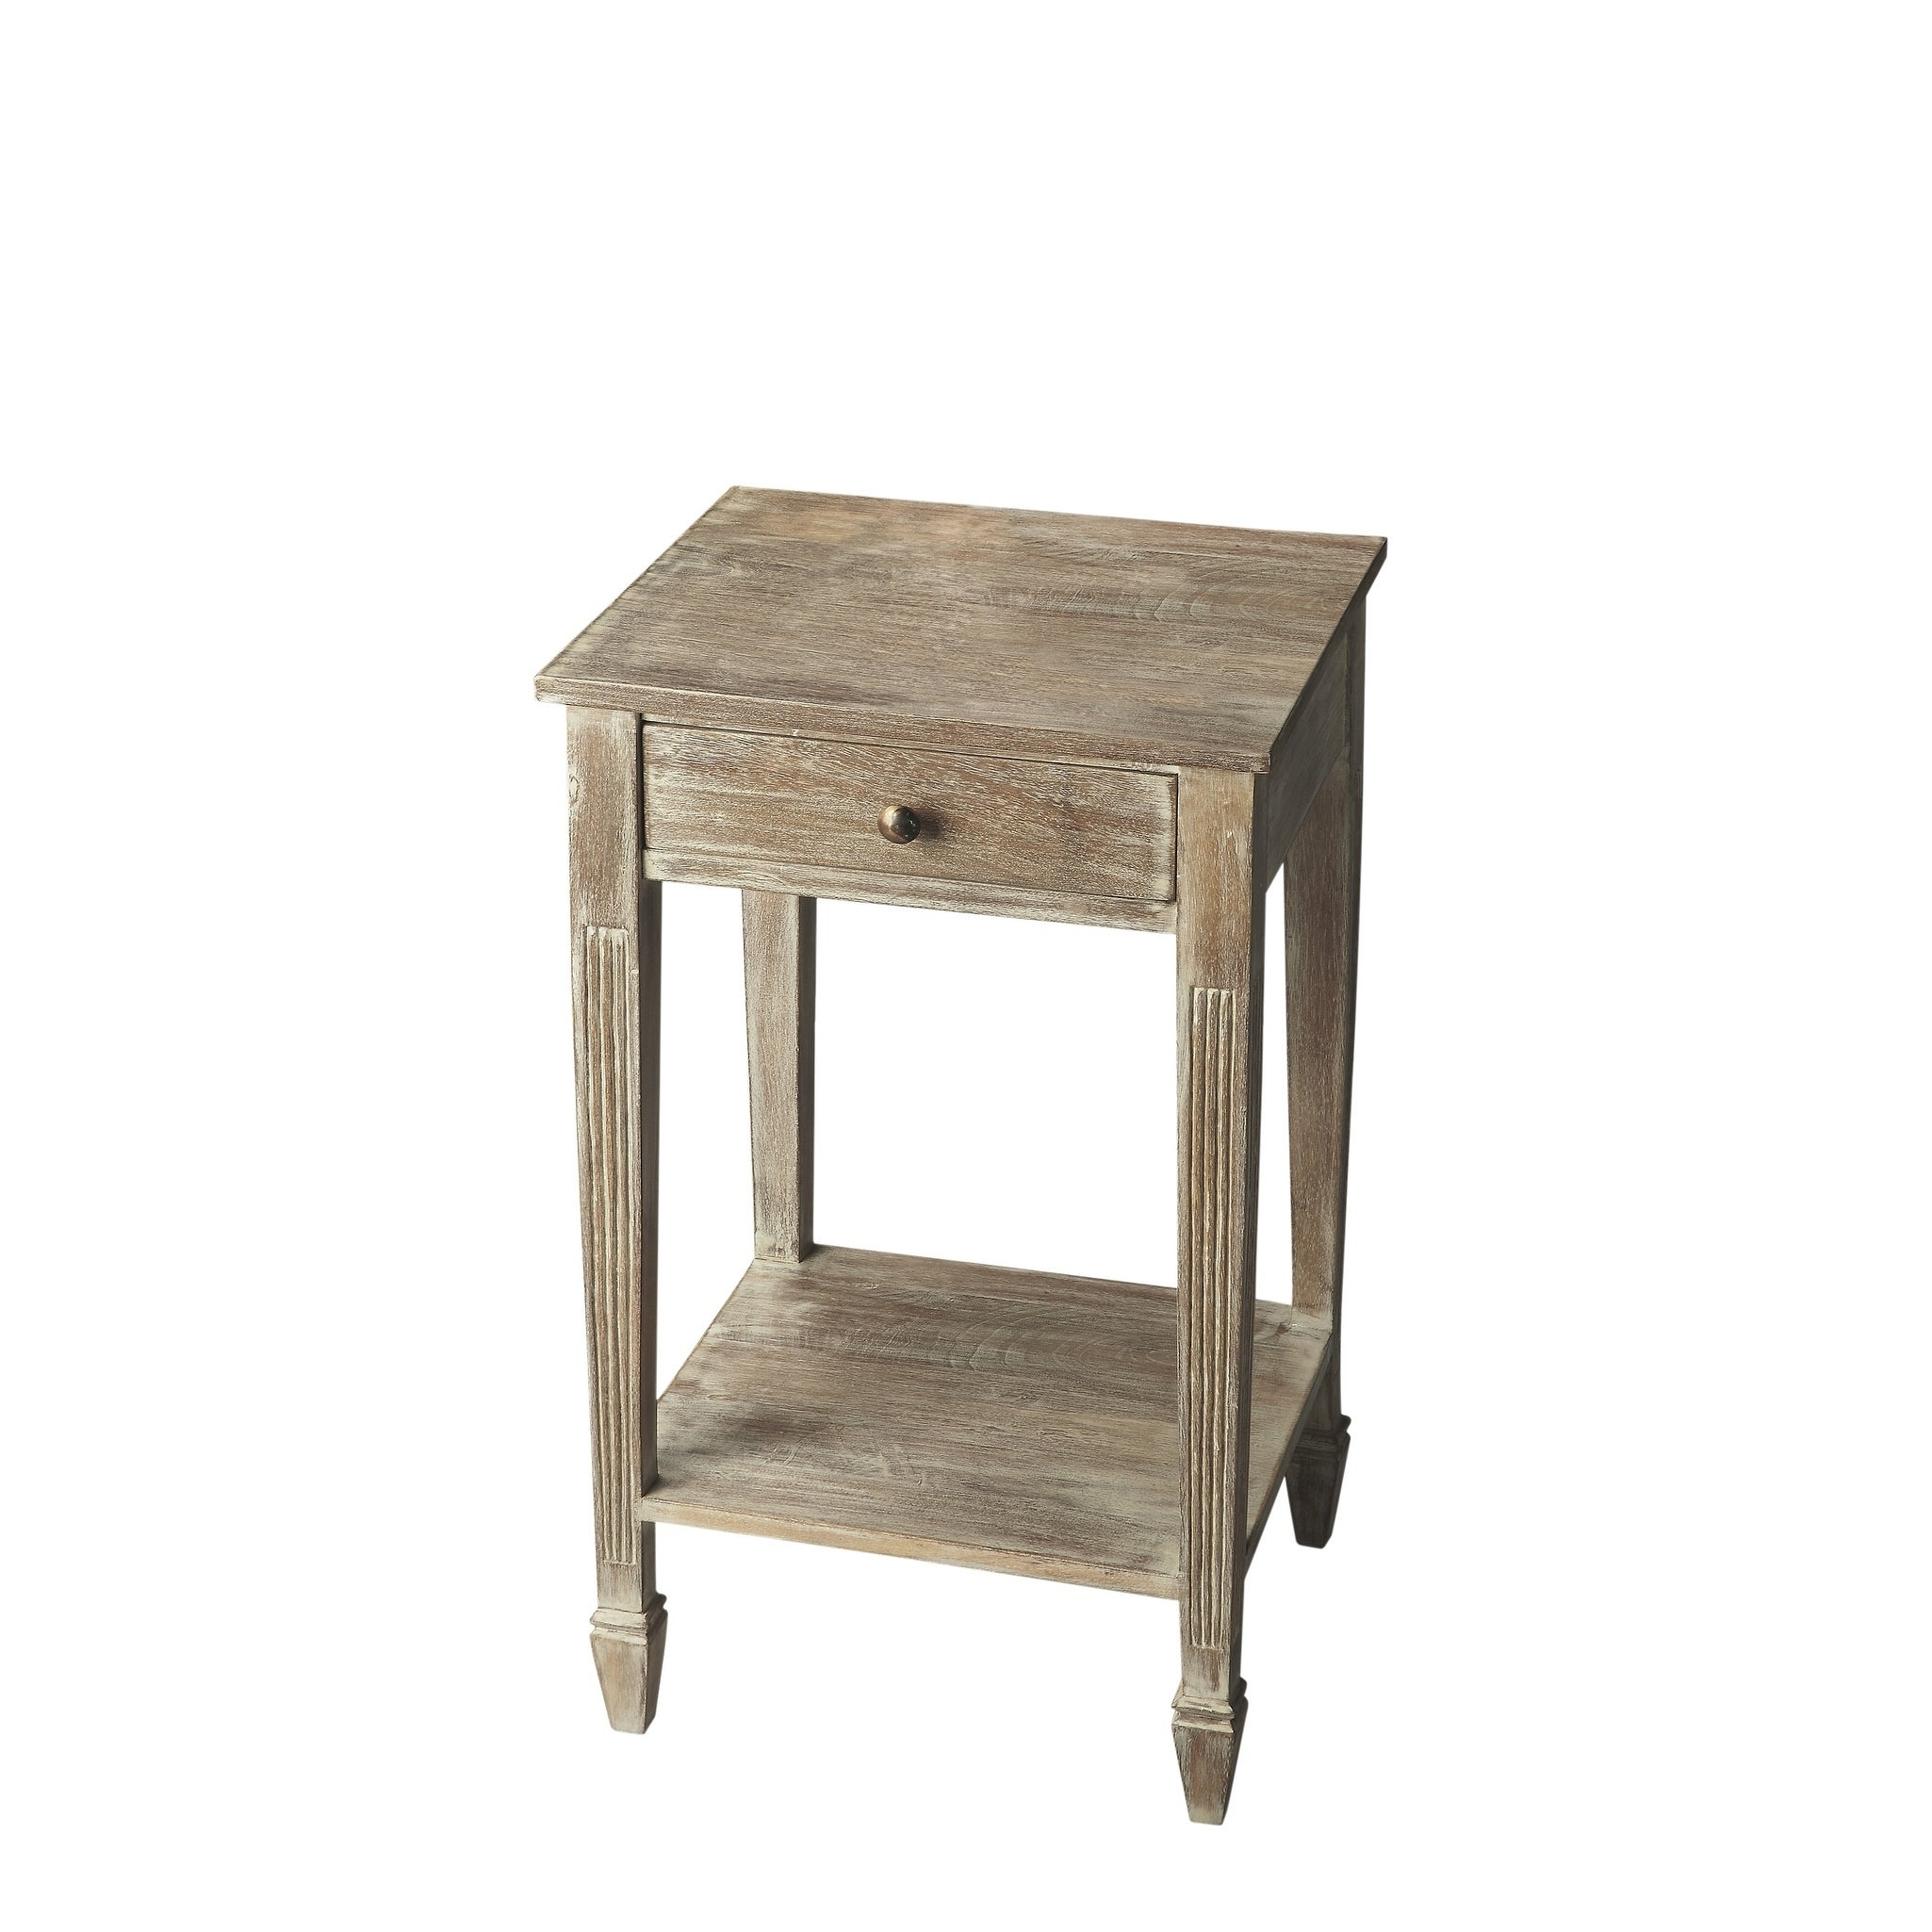 Handmade Butler Artifacts End Table (India) (Gray), Beige